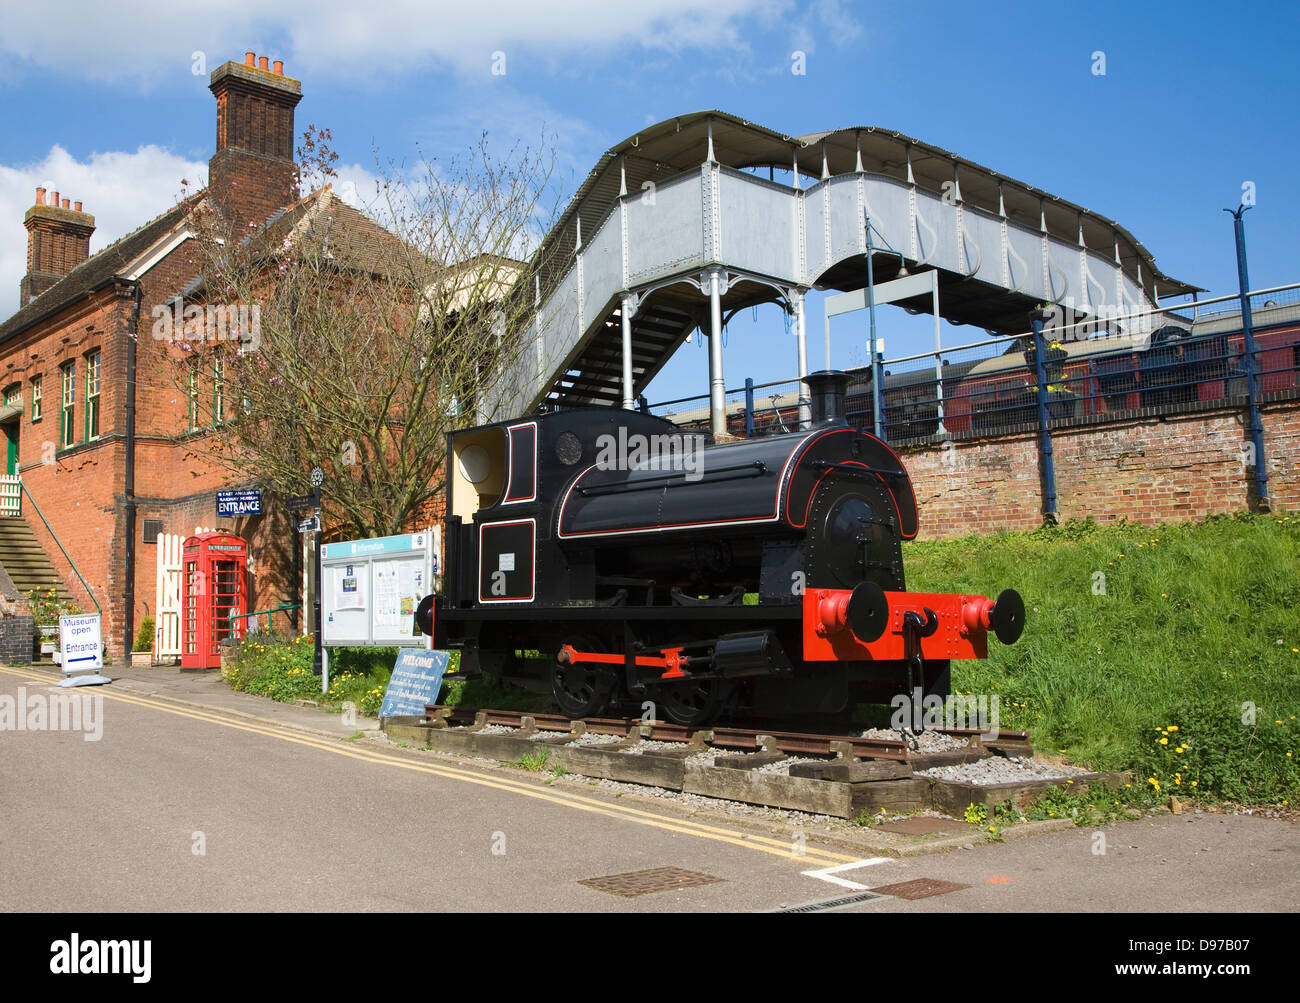 East Anglian railway museum, Chapell, Essex, England - Stock Image